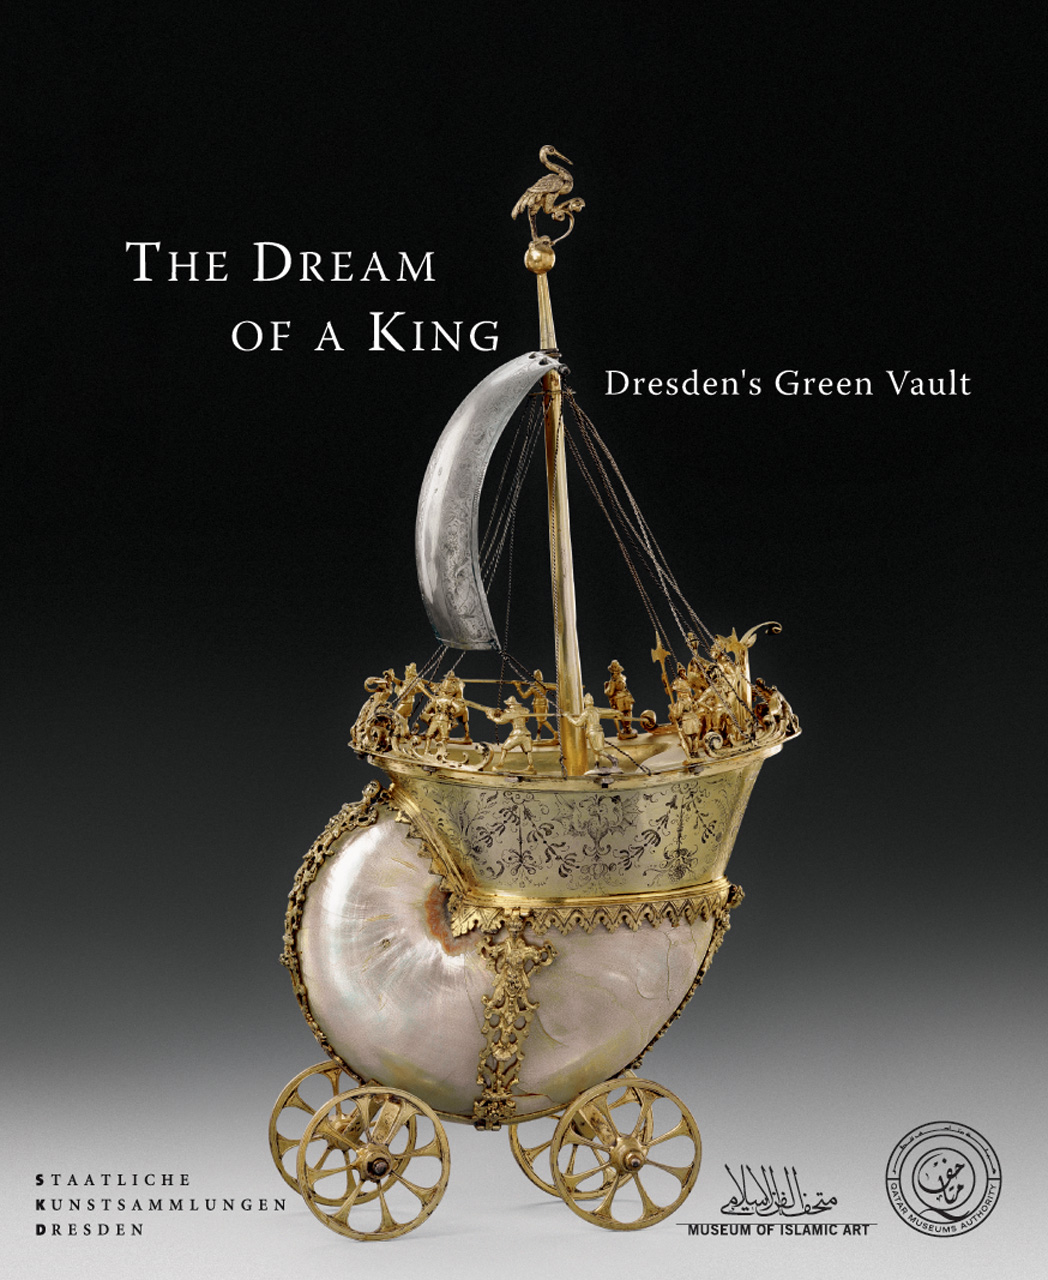 The Dream of a King: Dresden's Green Vault